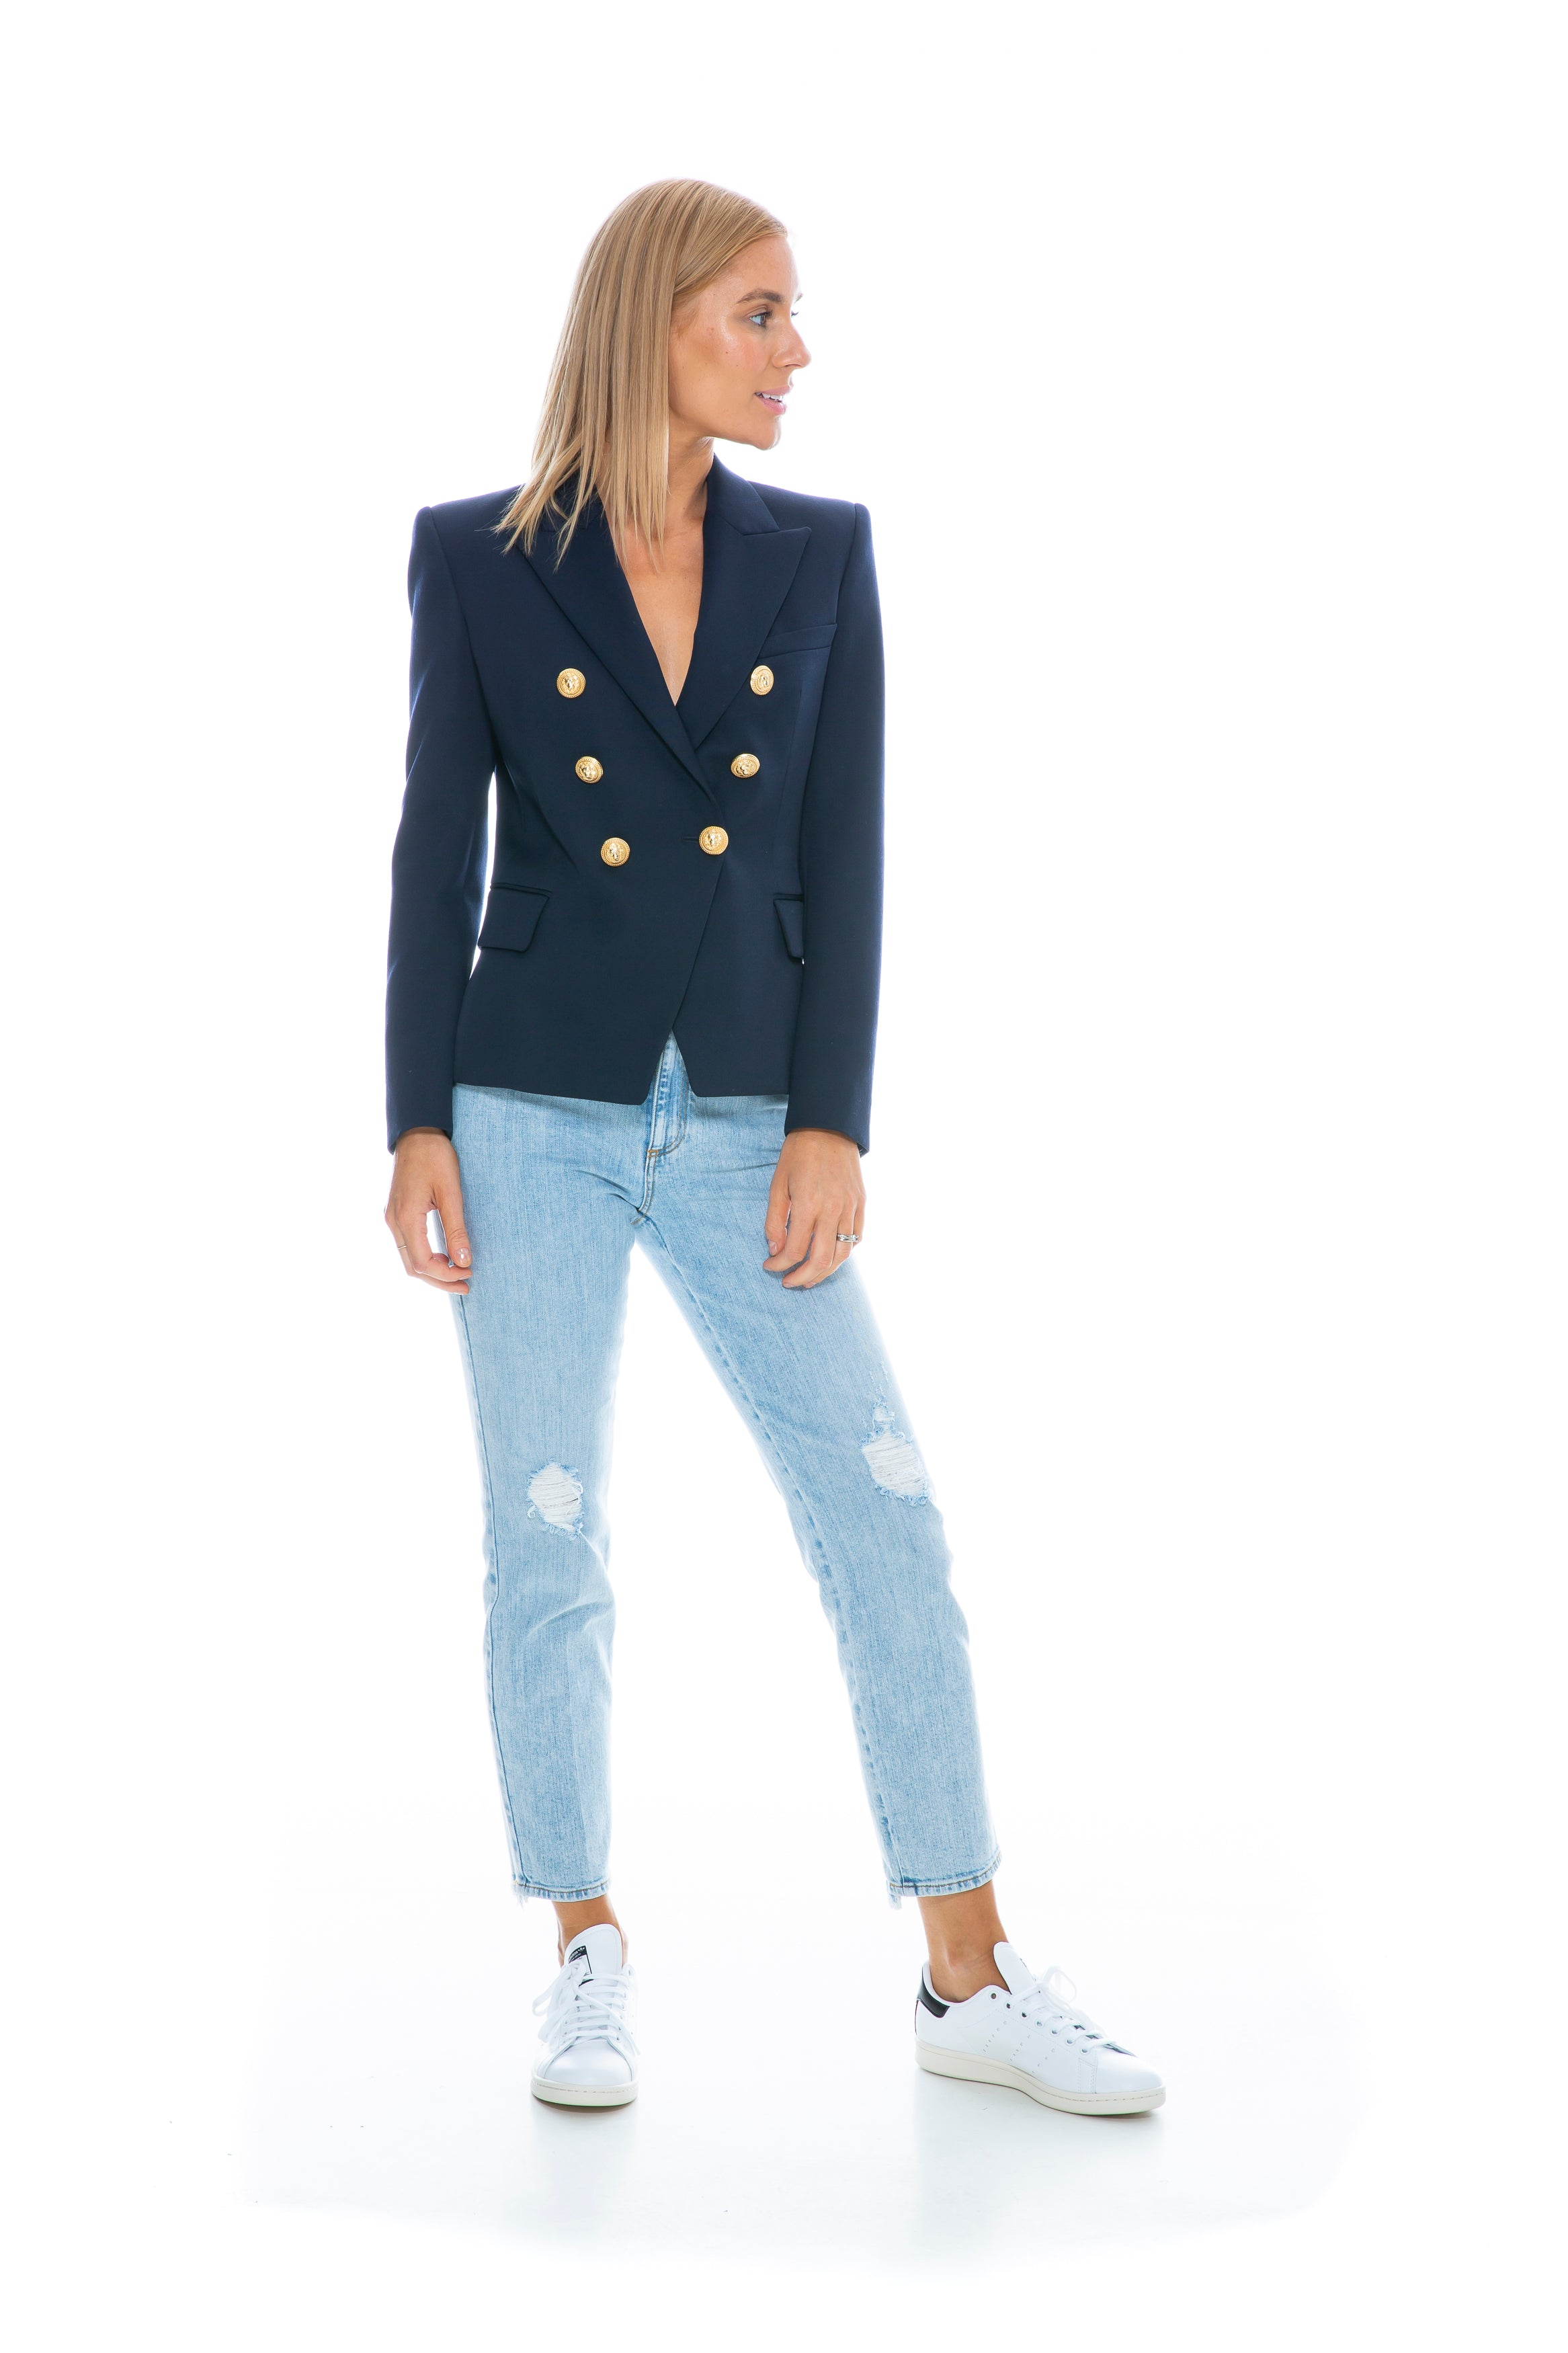 CLASSIC 6 BUTTON BLAZER MARINE WITH GOLD BUTTONS